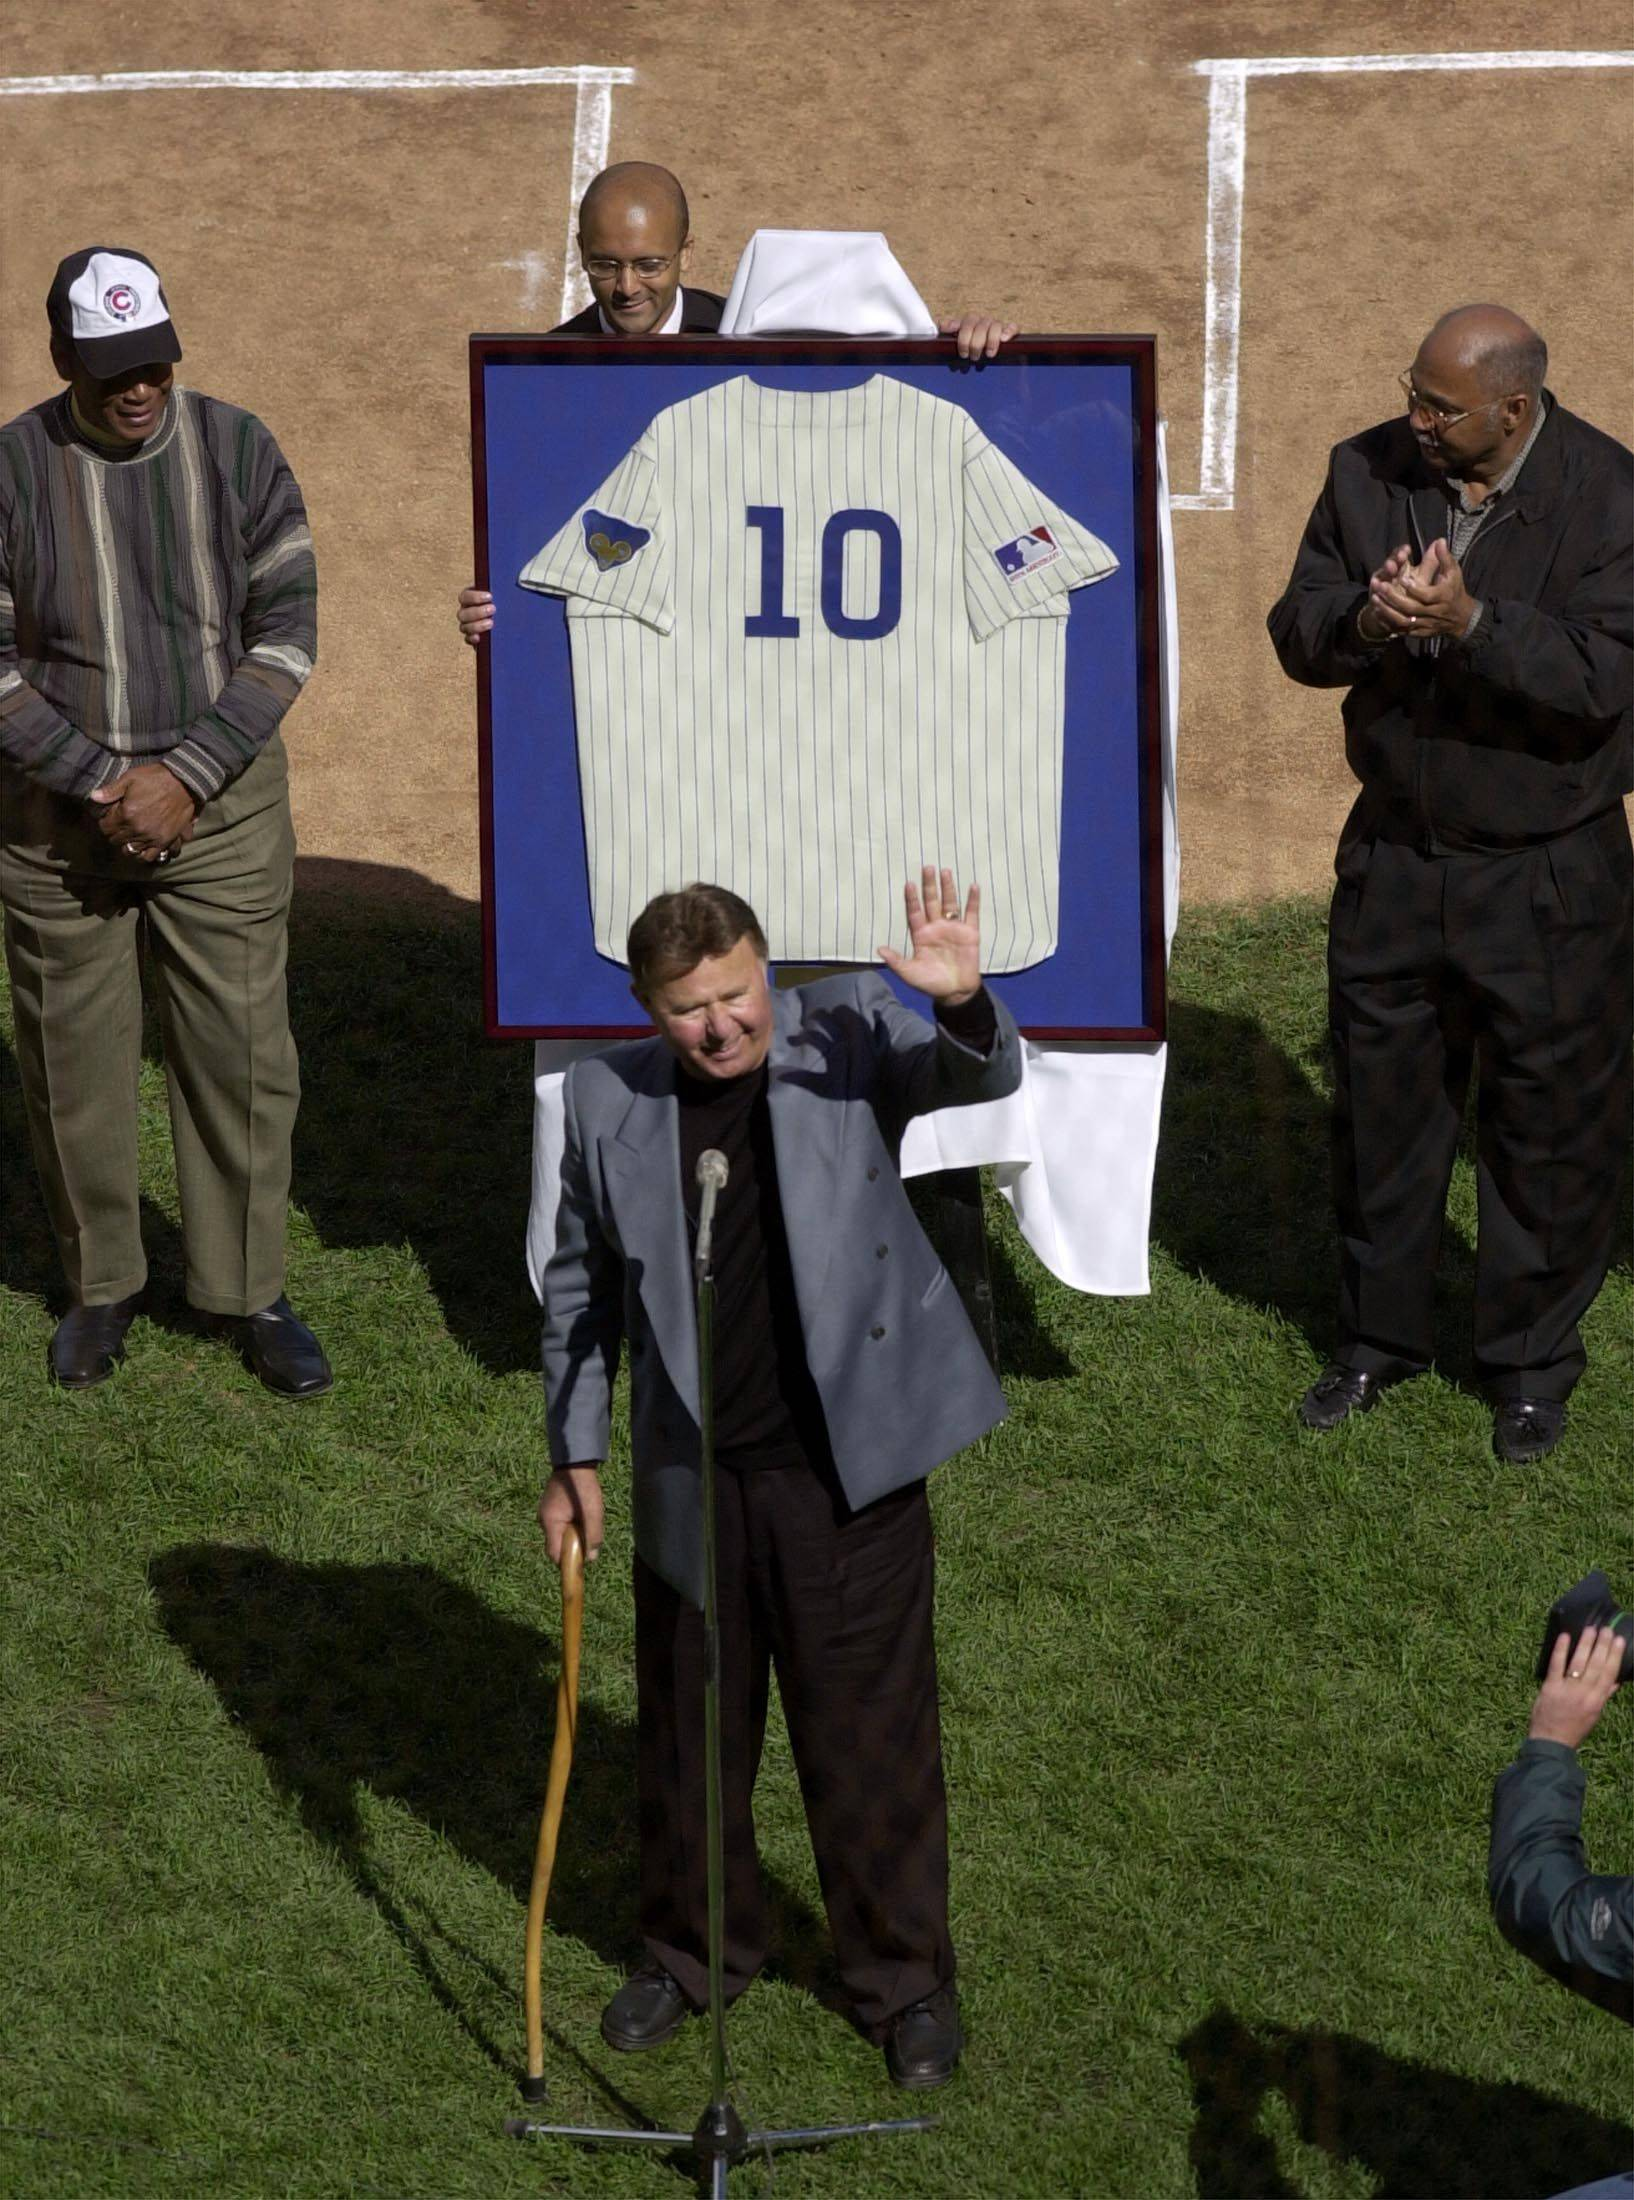 """Ronnie, number 10, was and always will be a Chicago legend. He was a tough player, he wanted to play and contribute every day, and he never let any obstacles stand in his way. -- Former teammate Ferguson Jenkins"